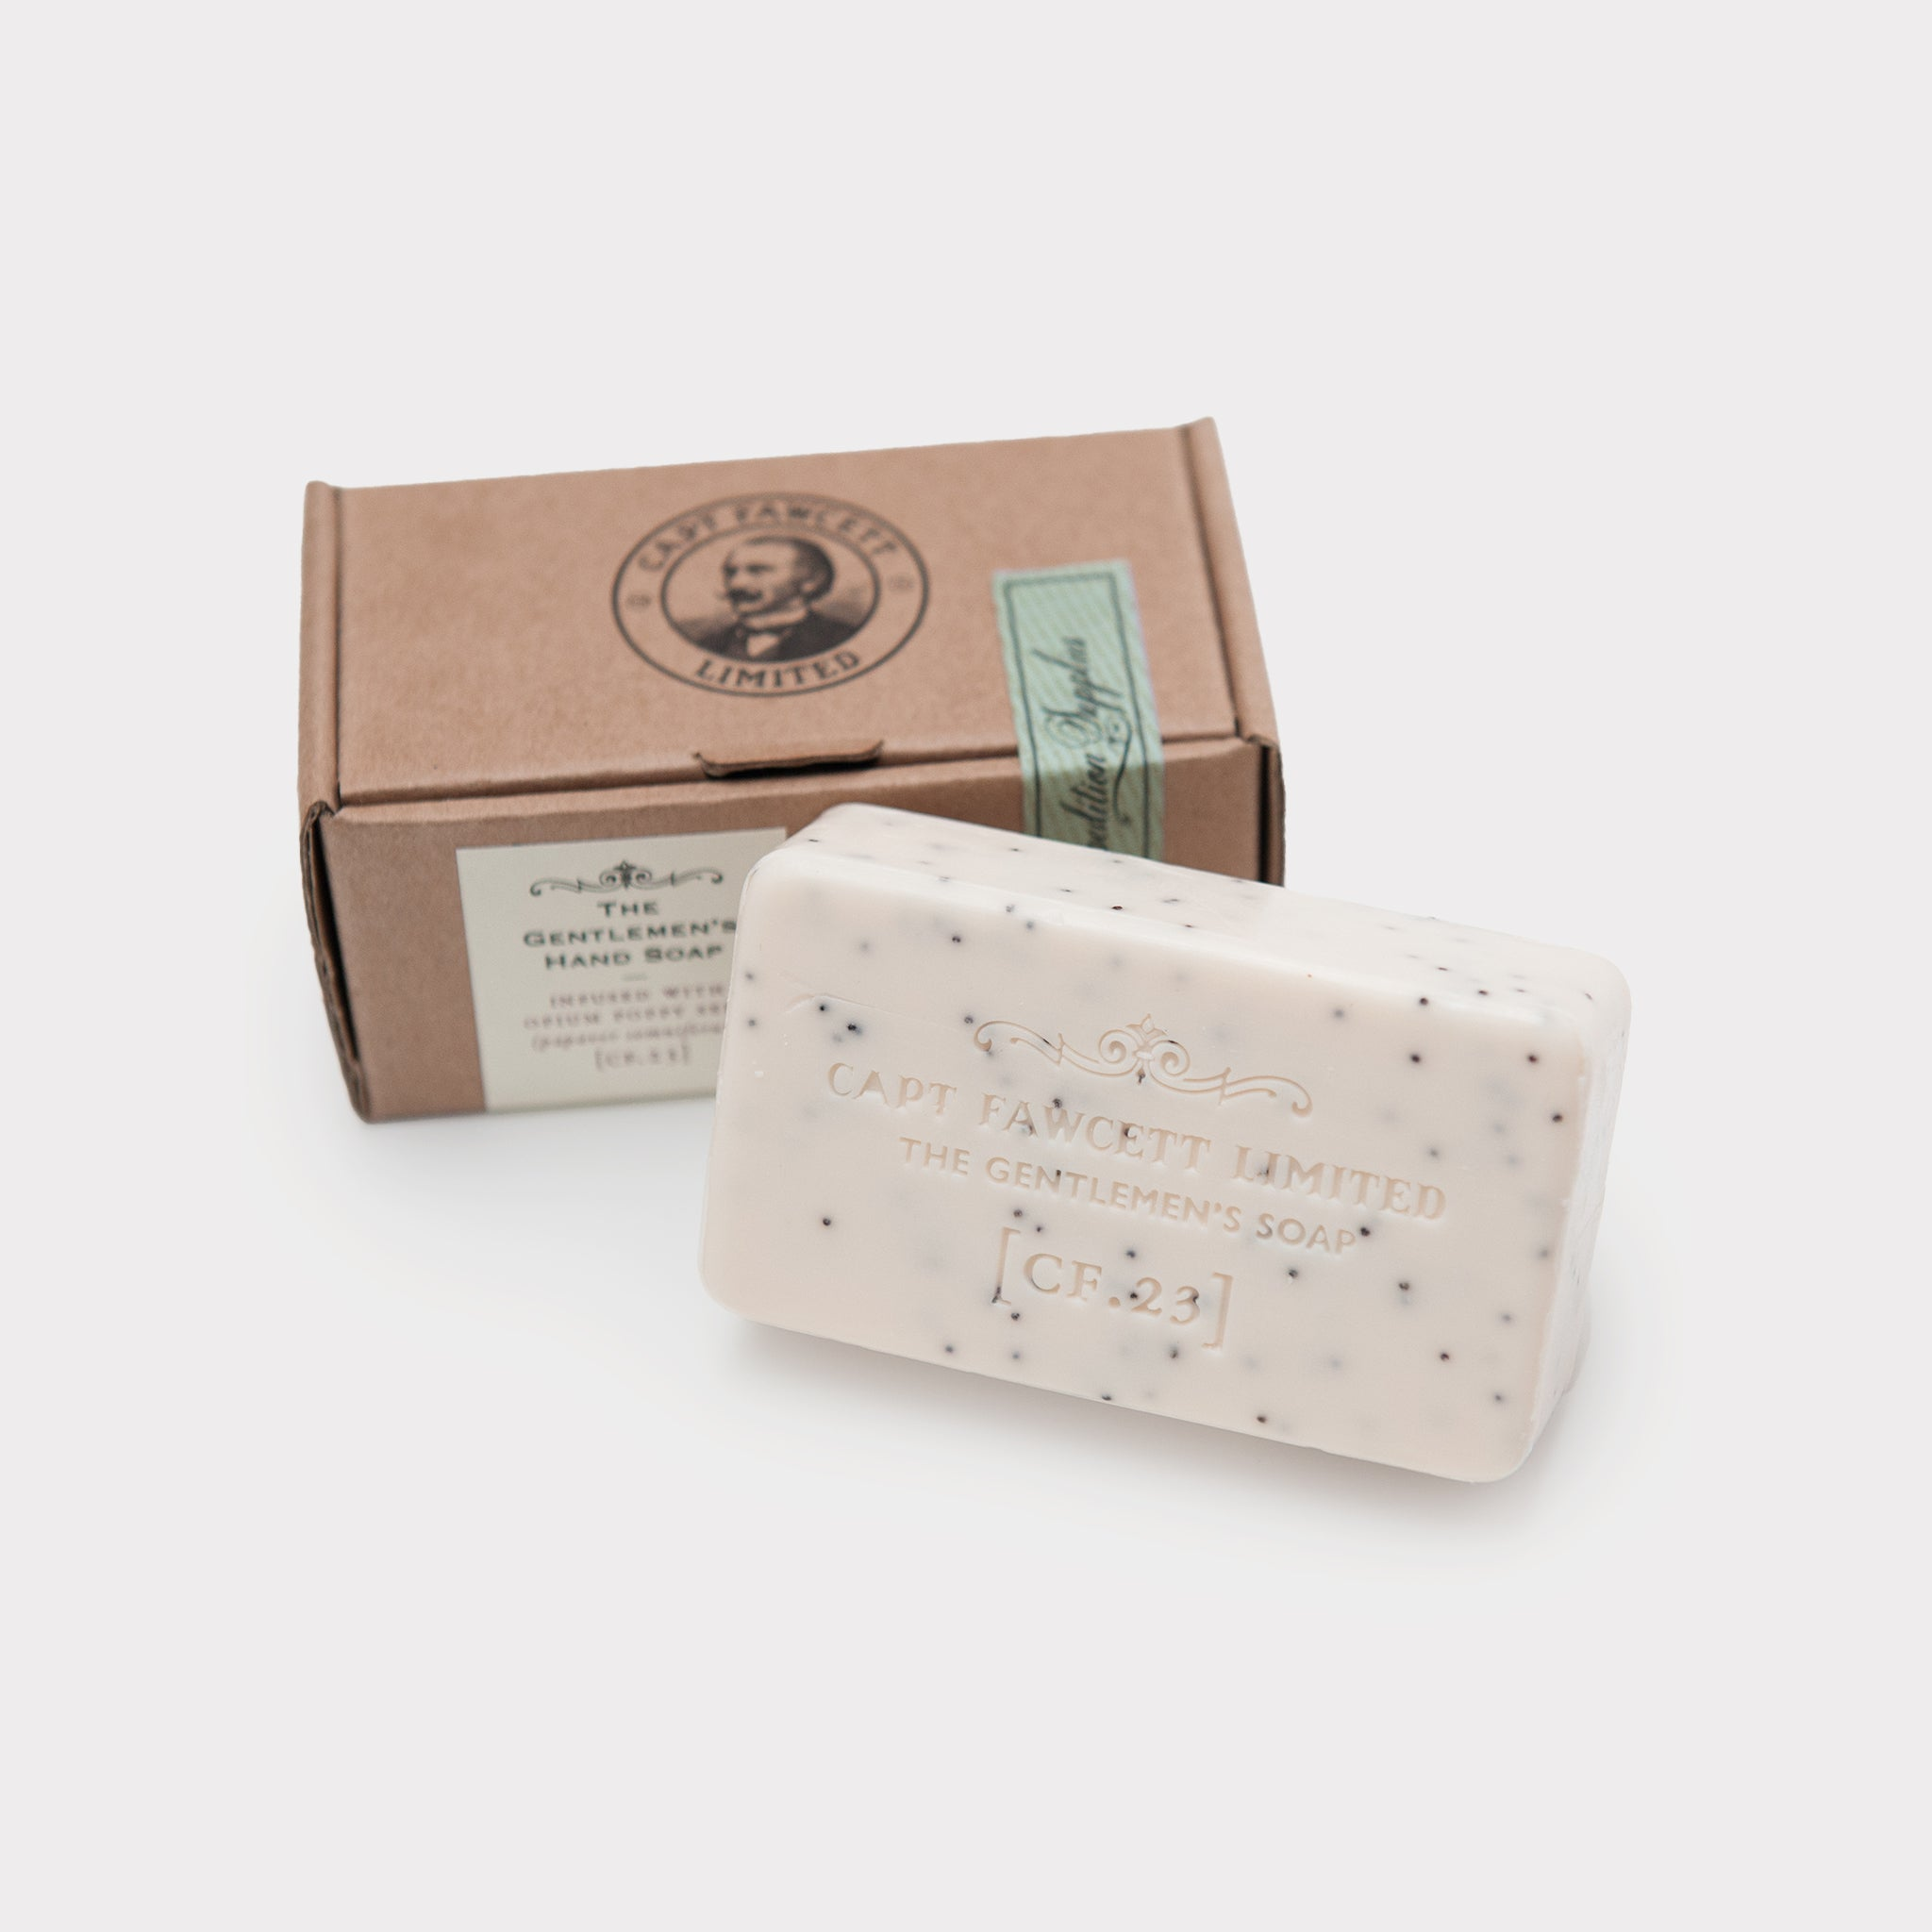 Captain Fawcett's The Gentlemen's Soap (CF.23)  165g